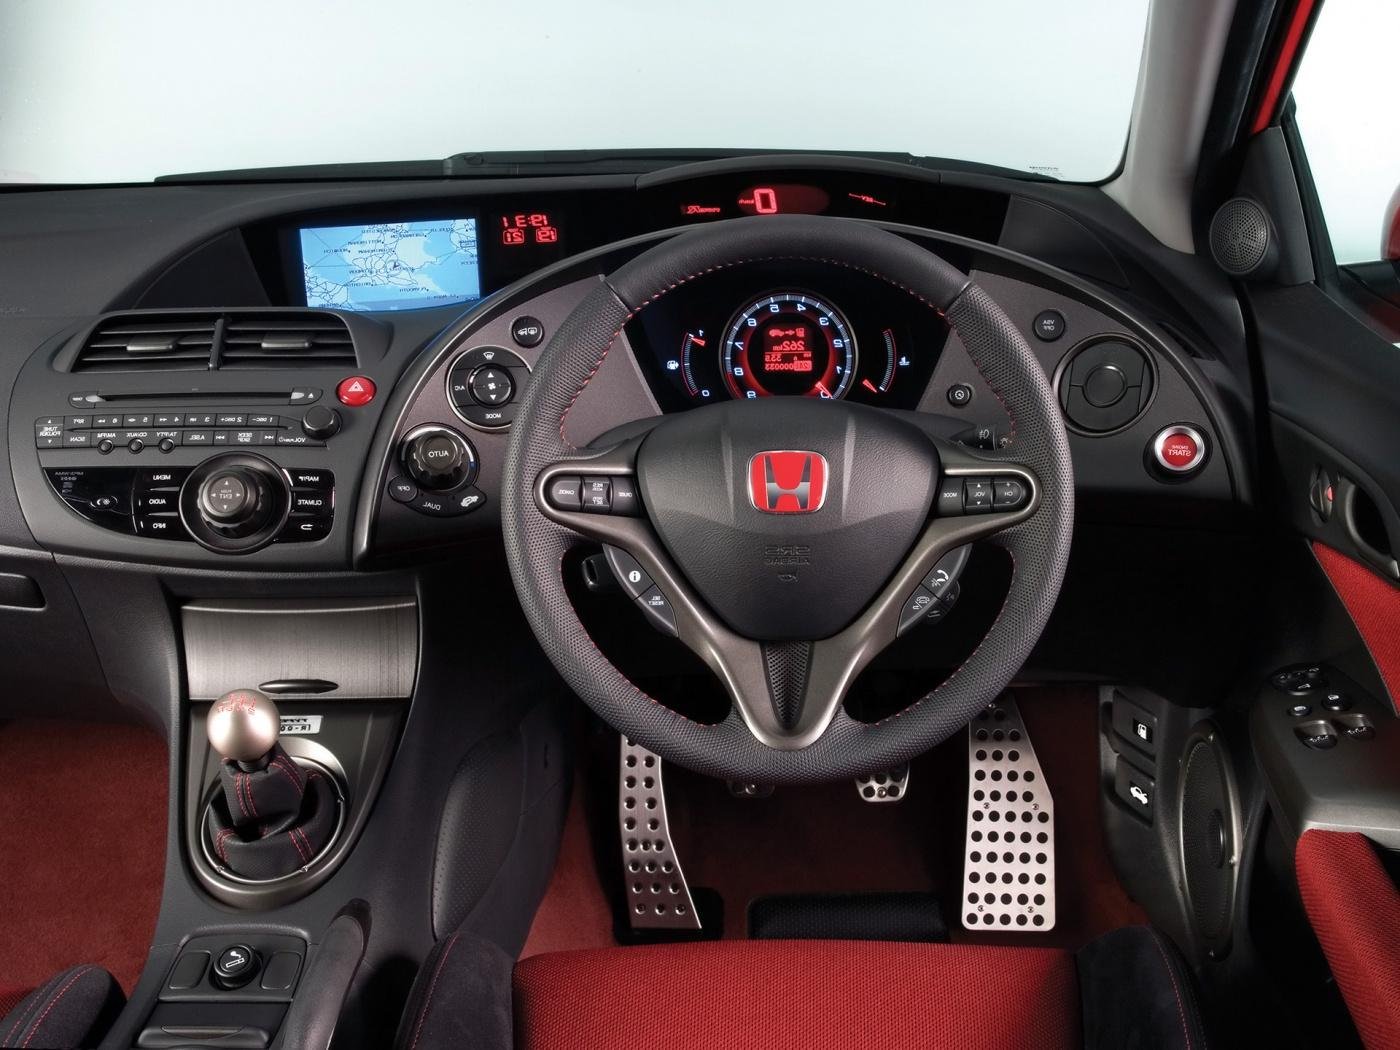 Civic Type R dashboard.